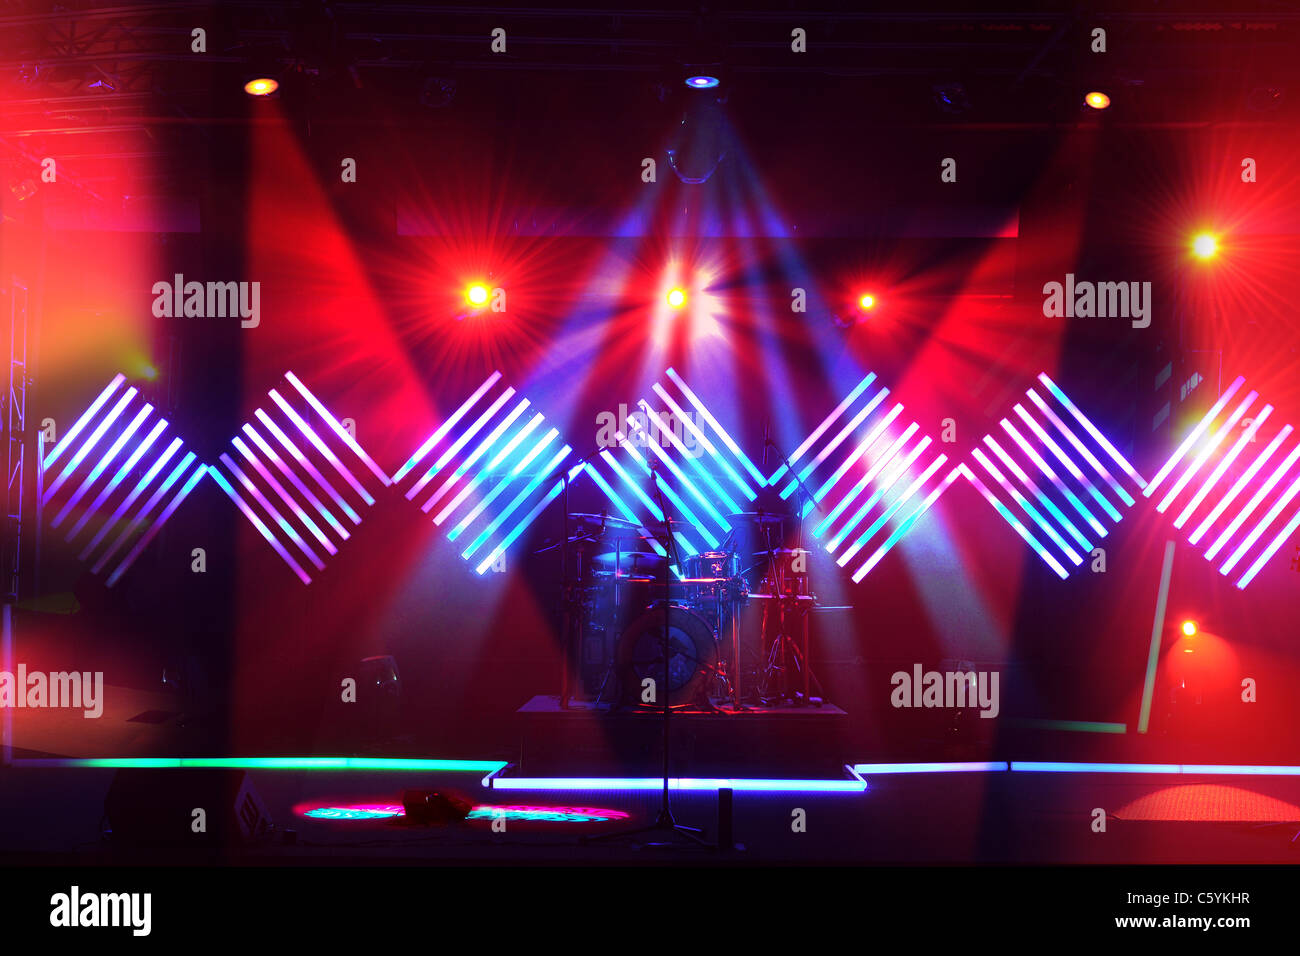 Stage lights with LED design in the background - Stock Image